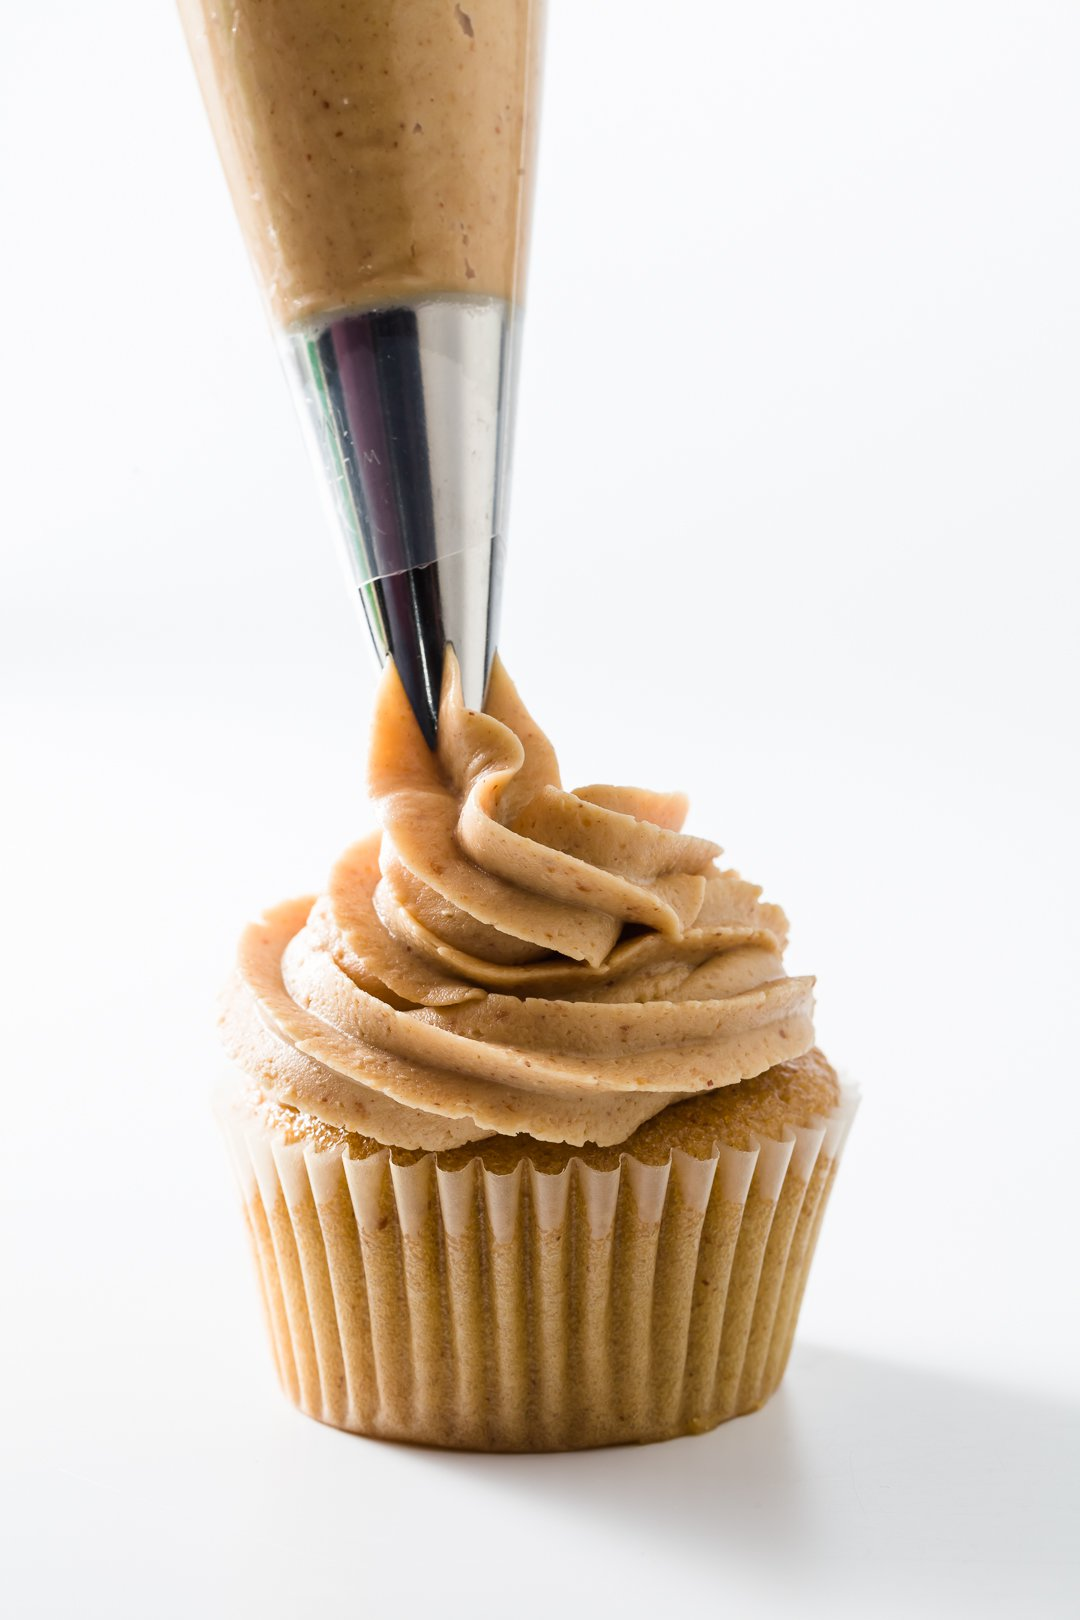 Peanut butter frosting being piped onto cupcakes